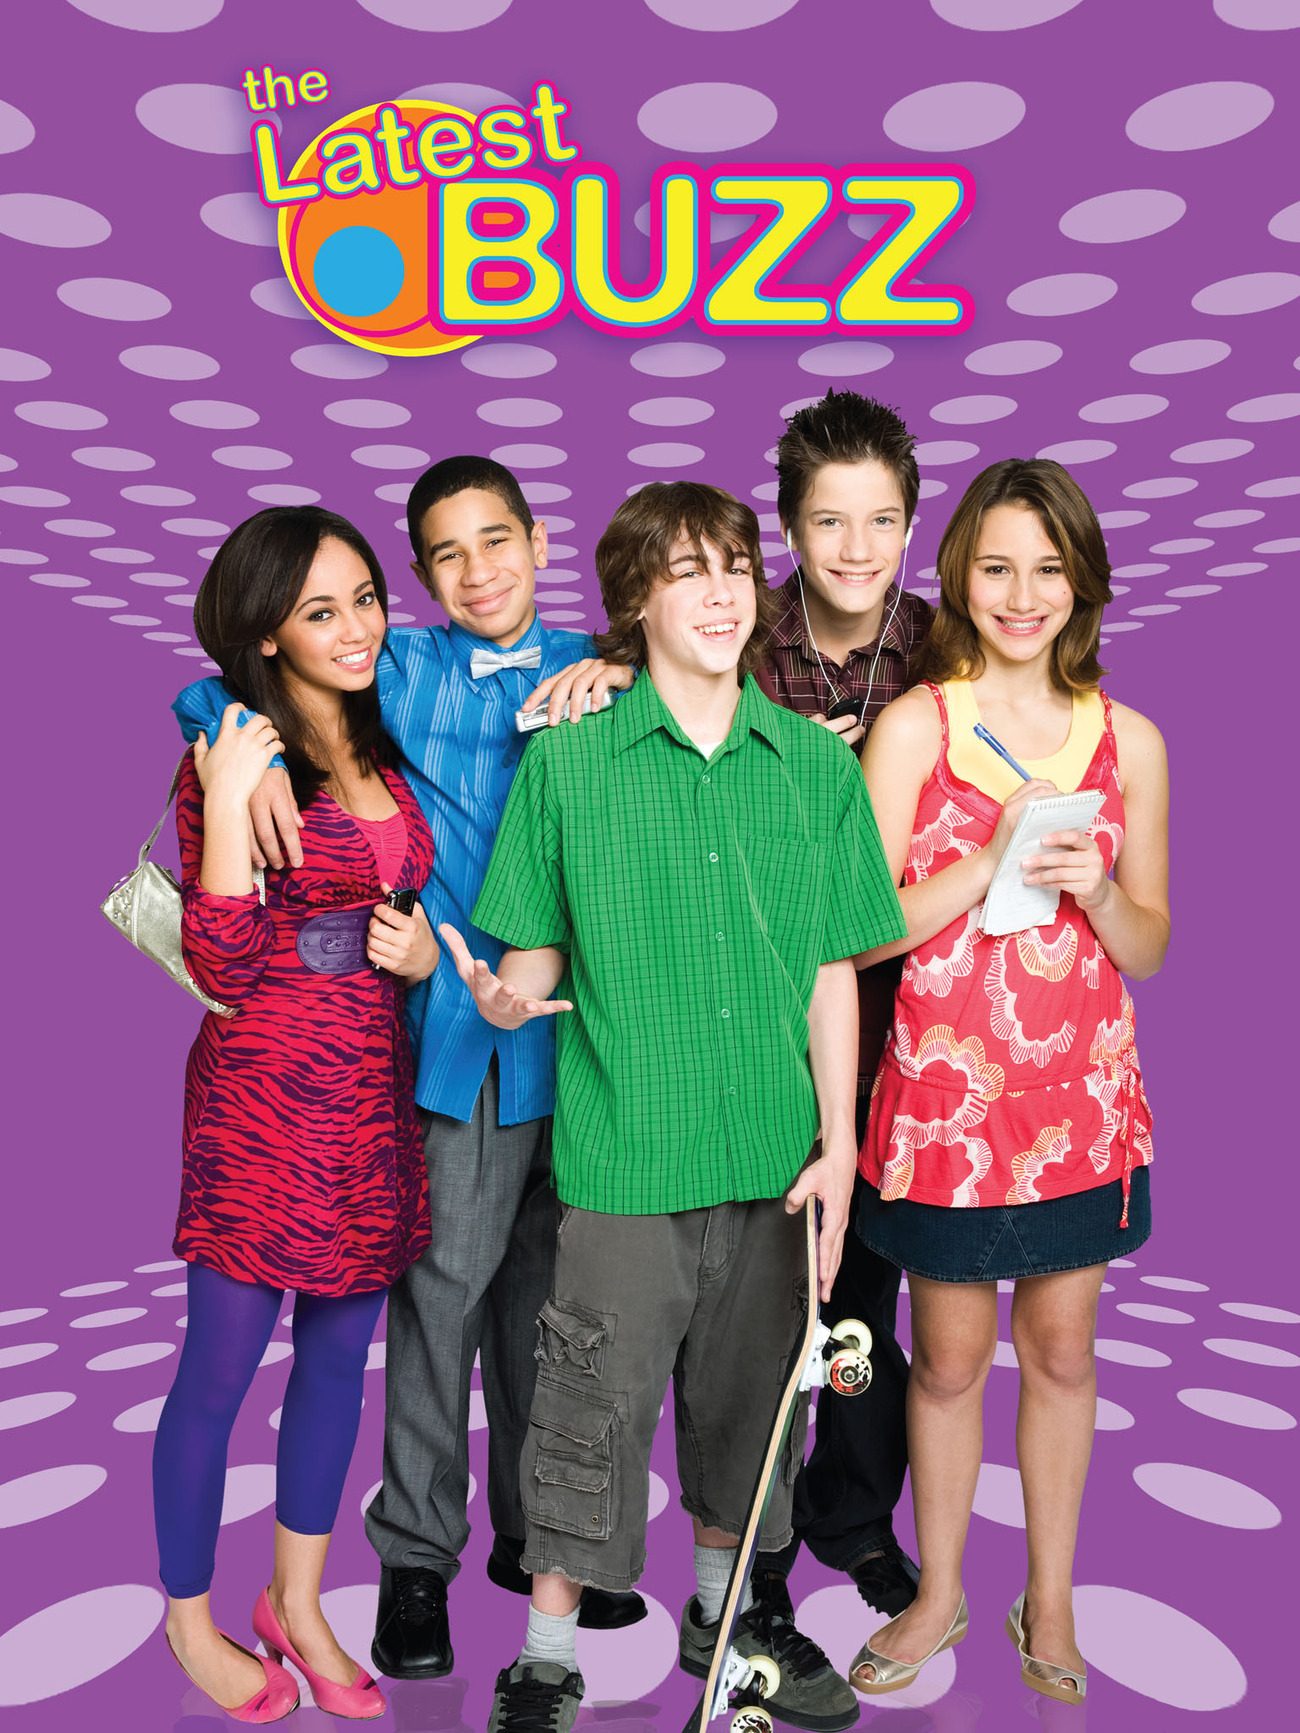 The Latest Buzz: Season 1